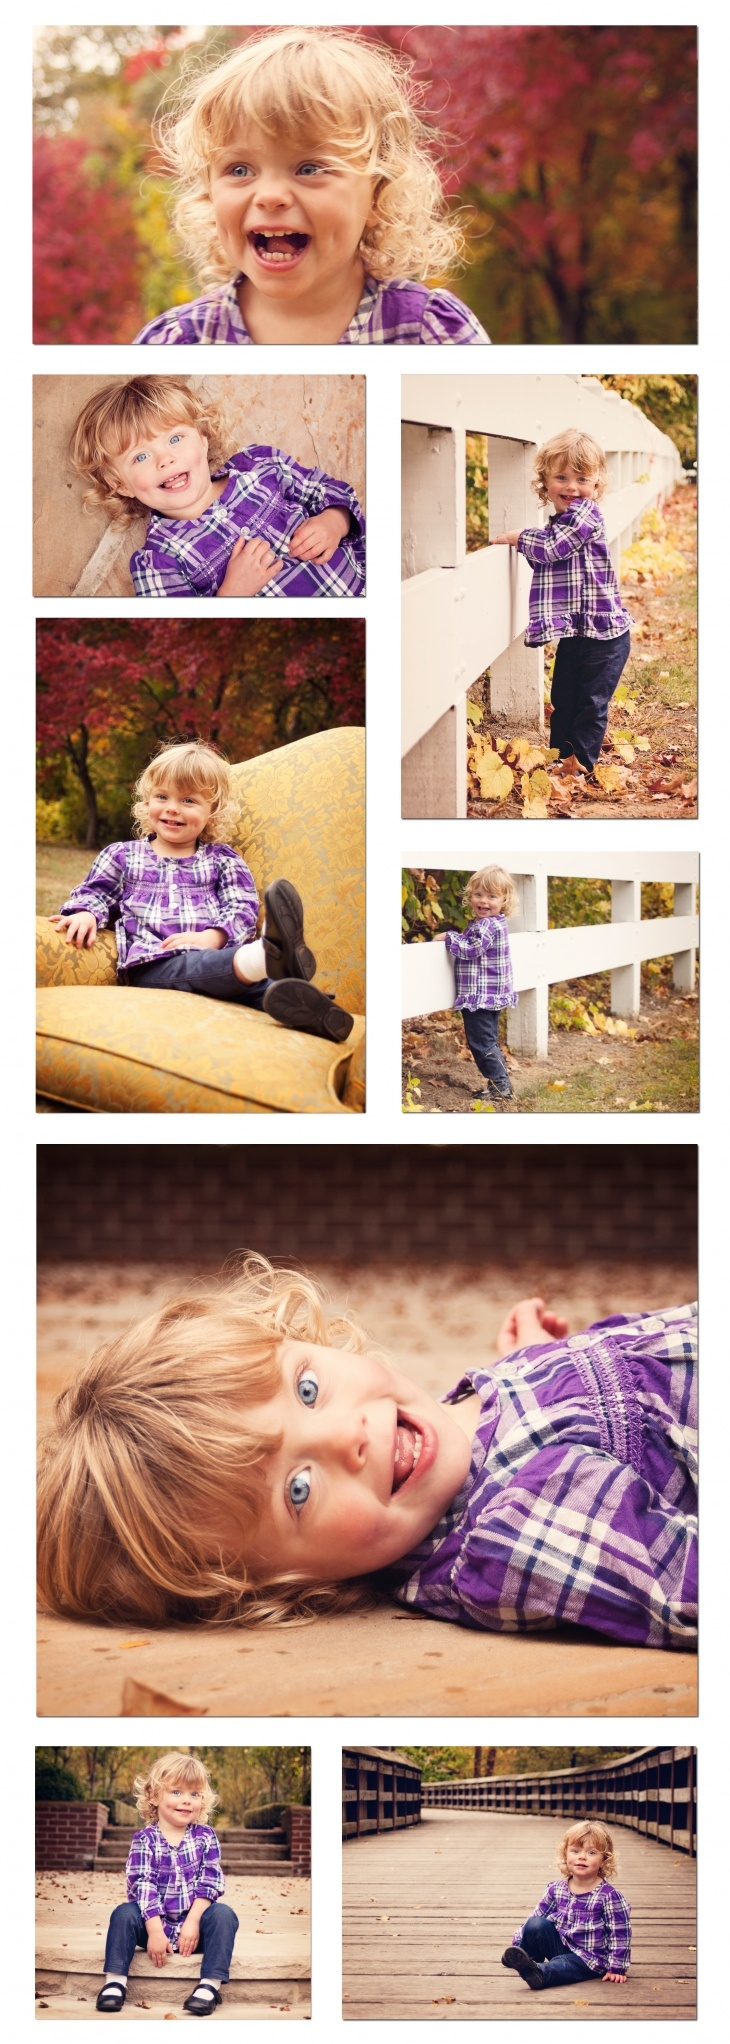 2 year old's pictures at the park... haha like Nadia would pose like this.